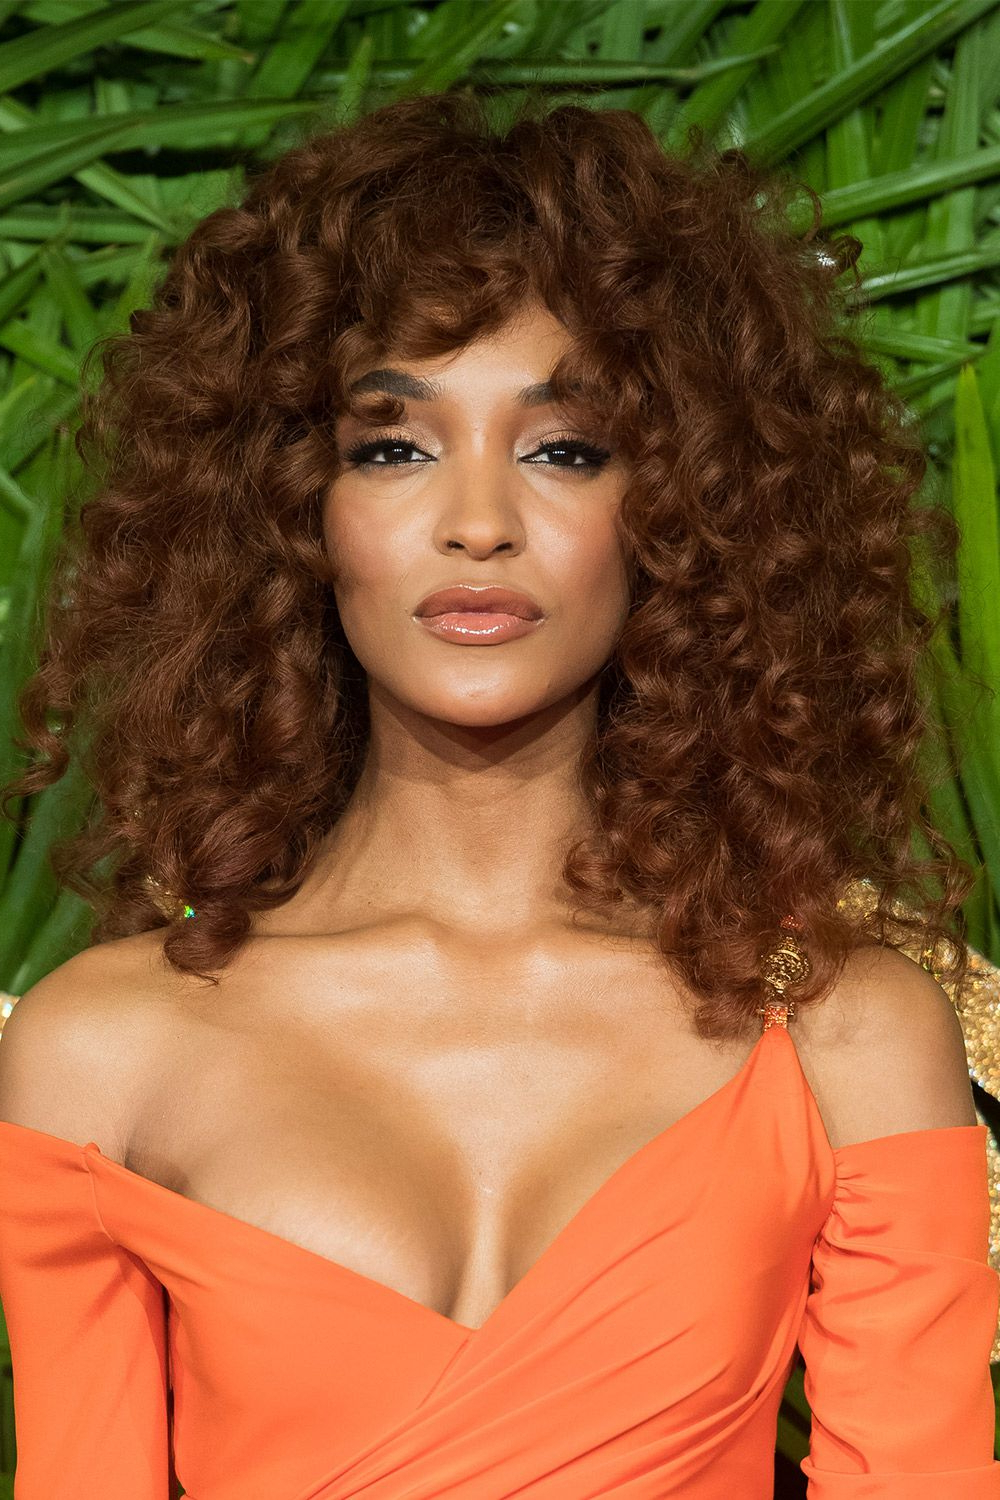 55 Best Curly Hairstyles Of 2018 – Cute Hairstyles For Curly Hair To For Natural Textured Curly Hairstyles (View 15 of 25)